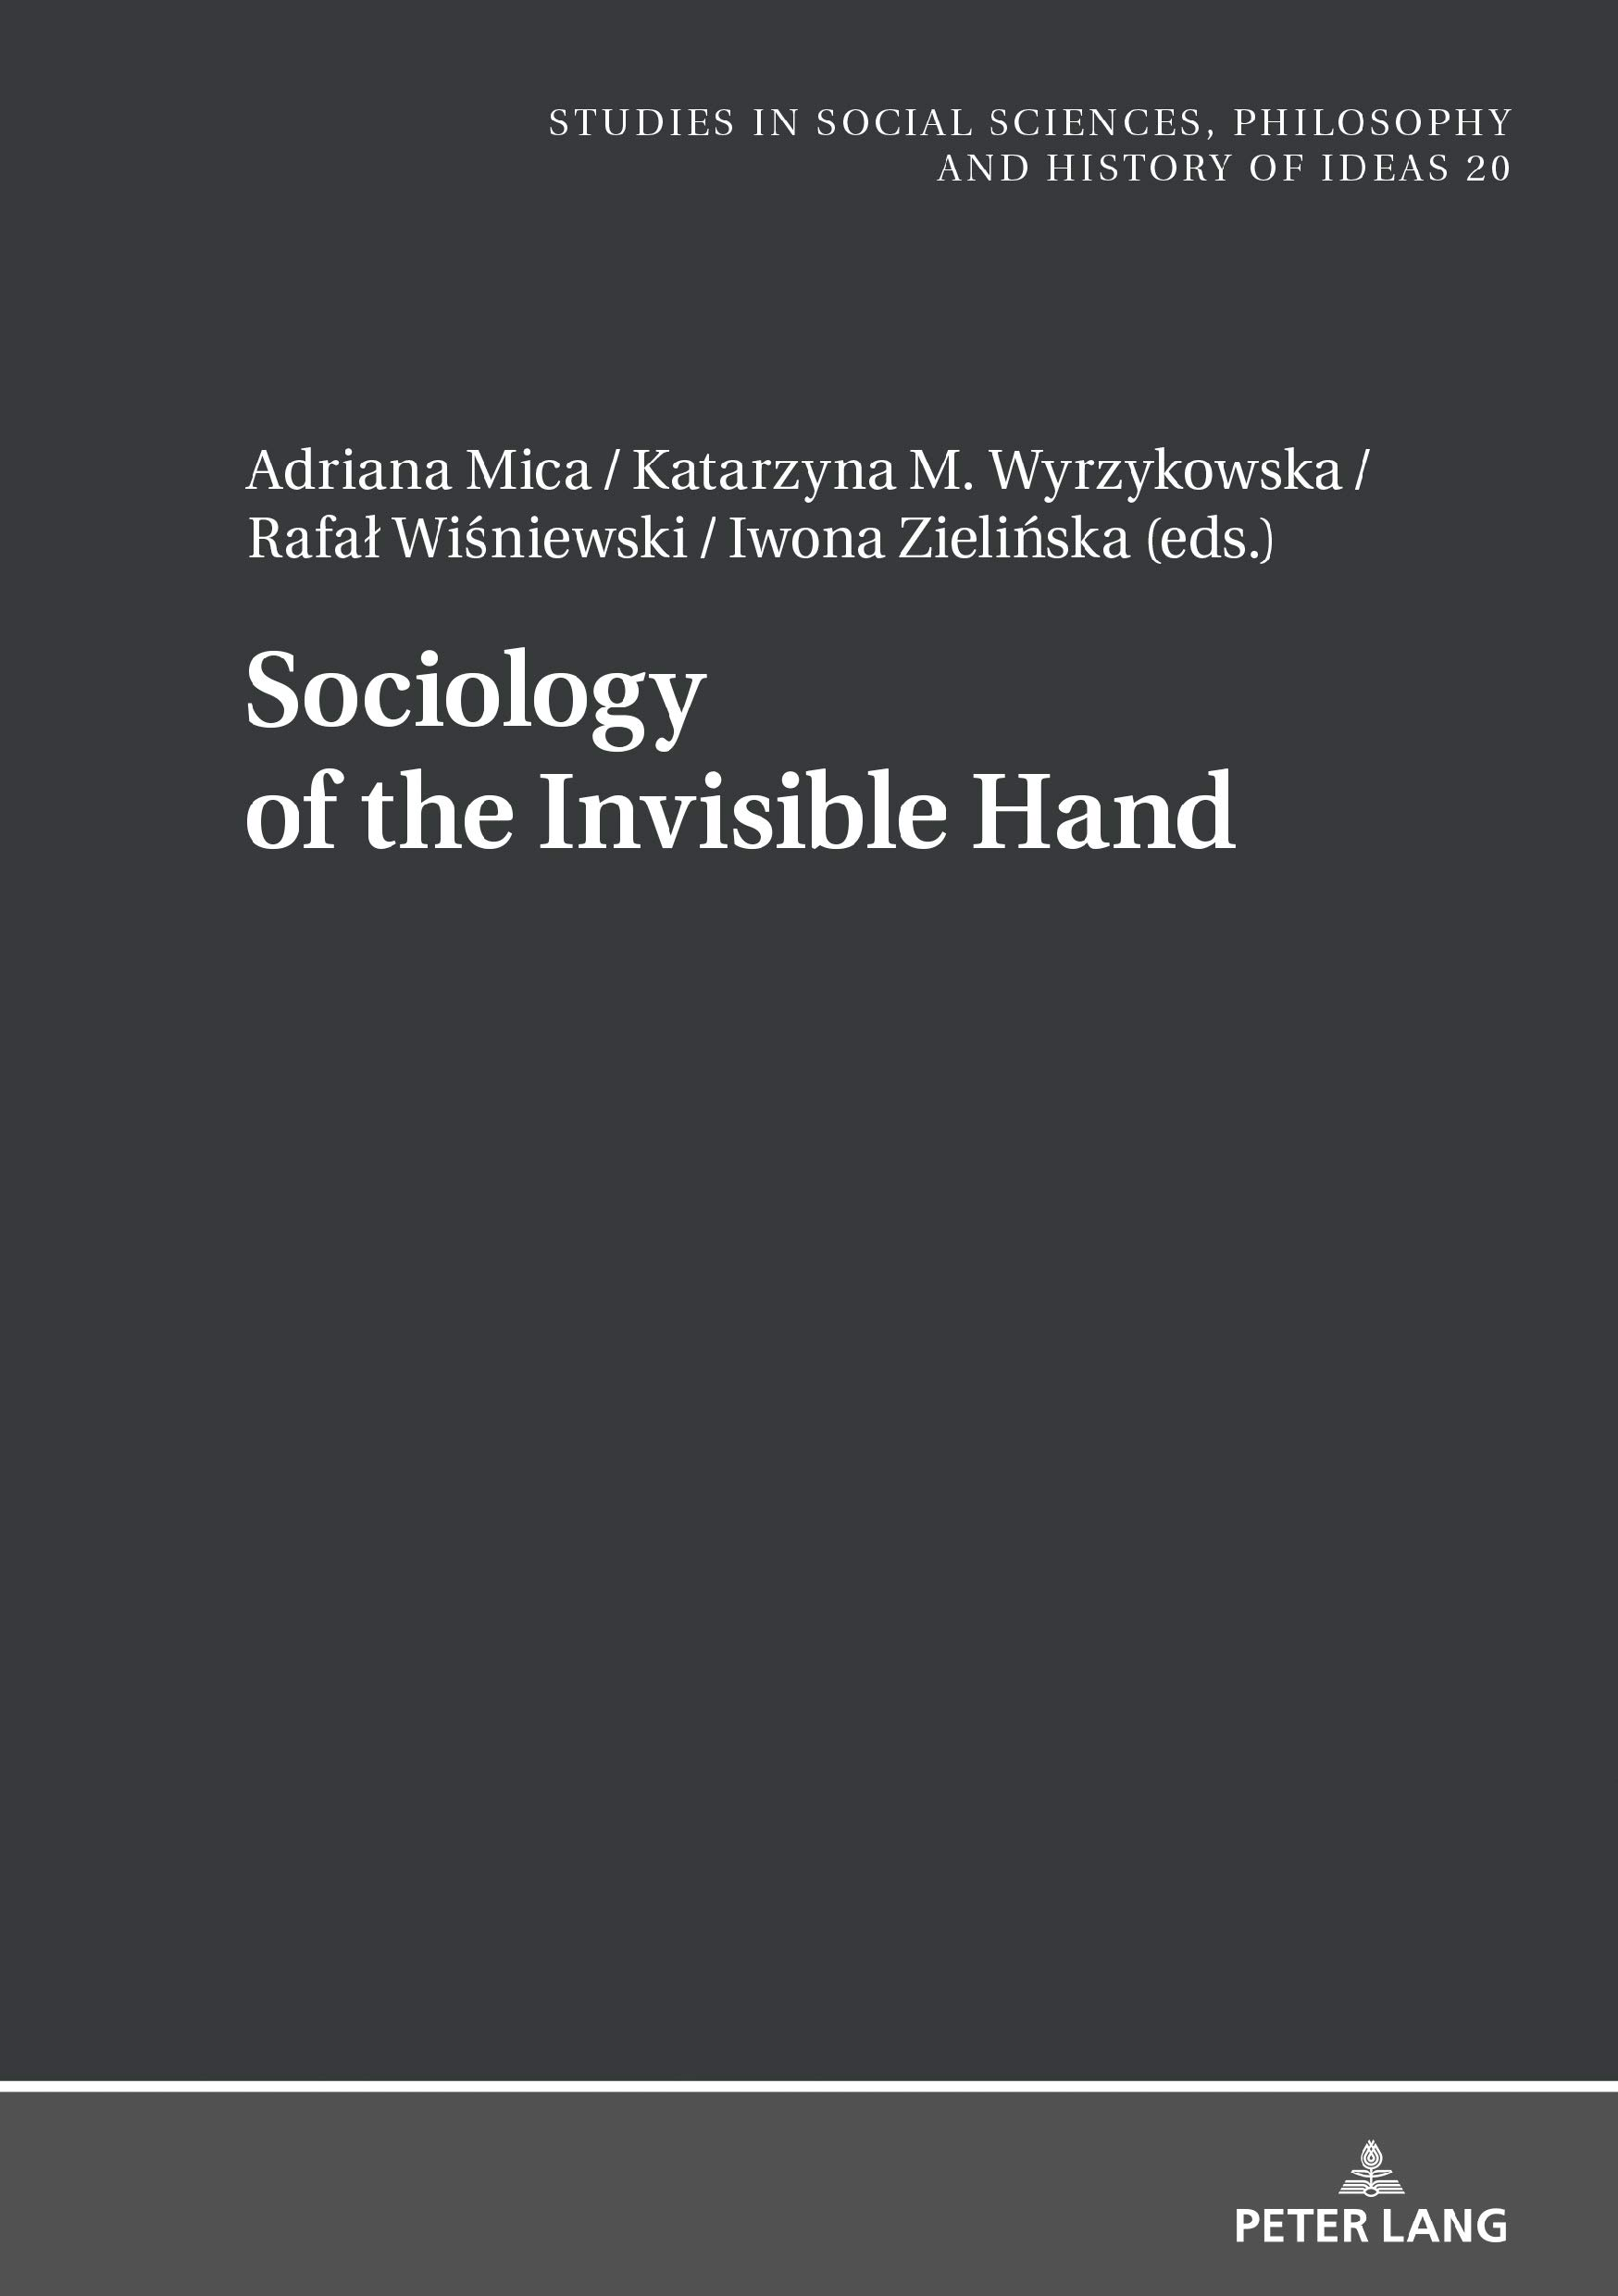 Sociology of the Invisible Hand (Studies in Social Sciences, Philosophy and History of Ideas Book 20)